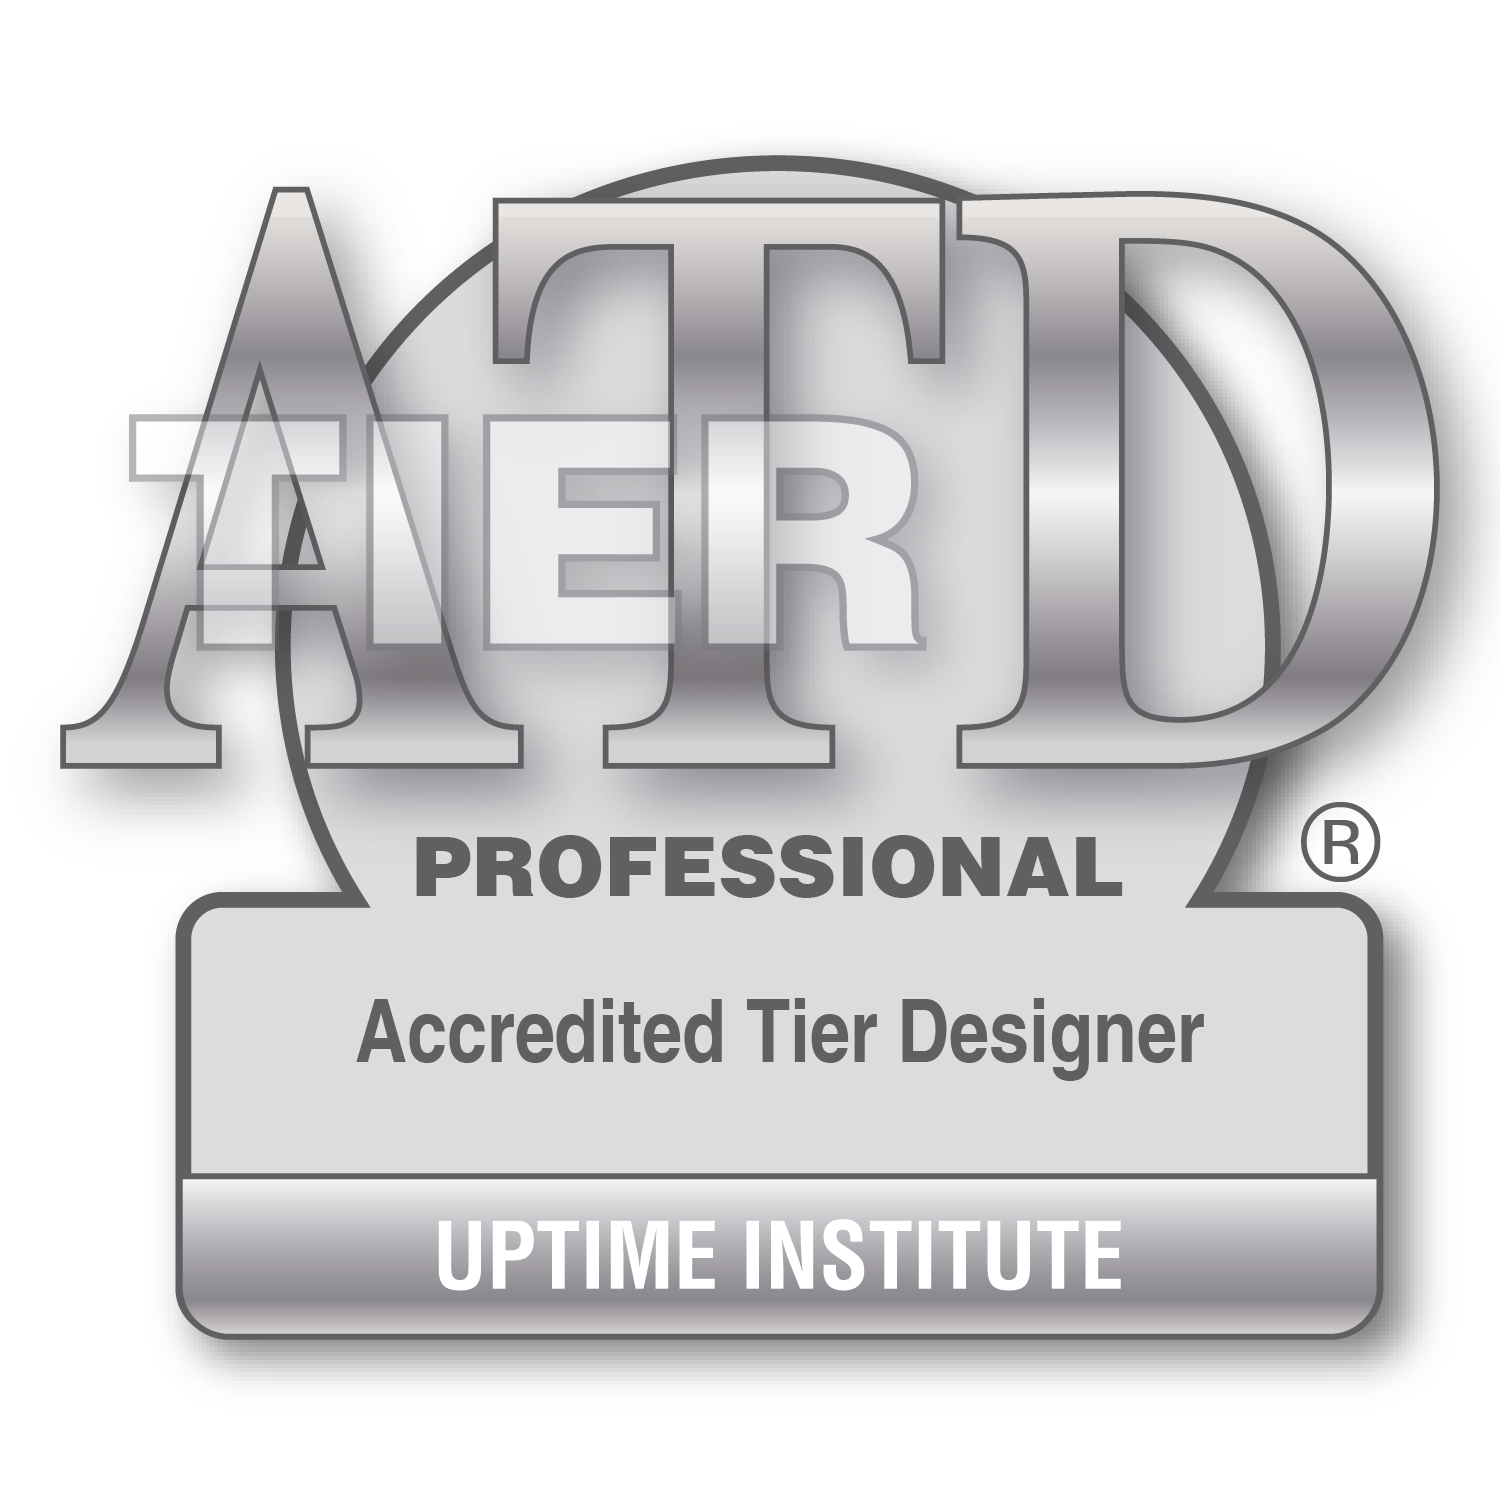 Programa Accredited Tier Designer - Uptime Institute LLC